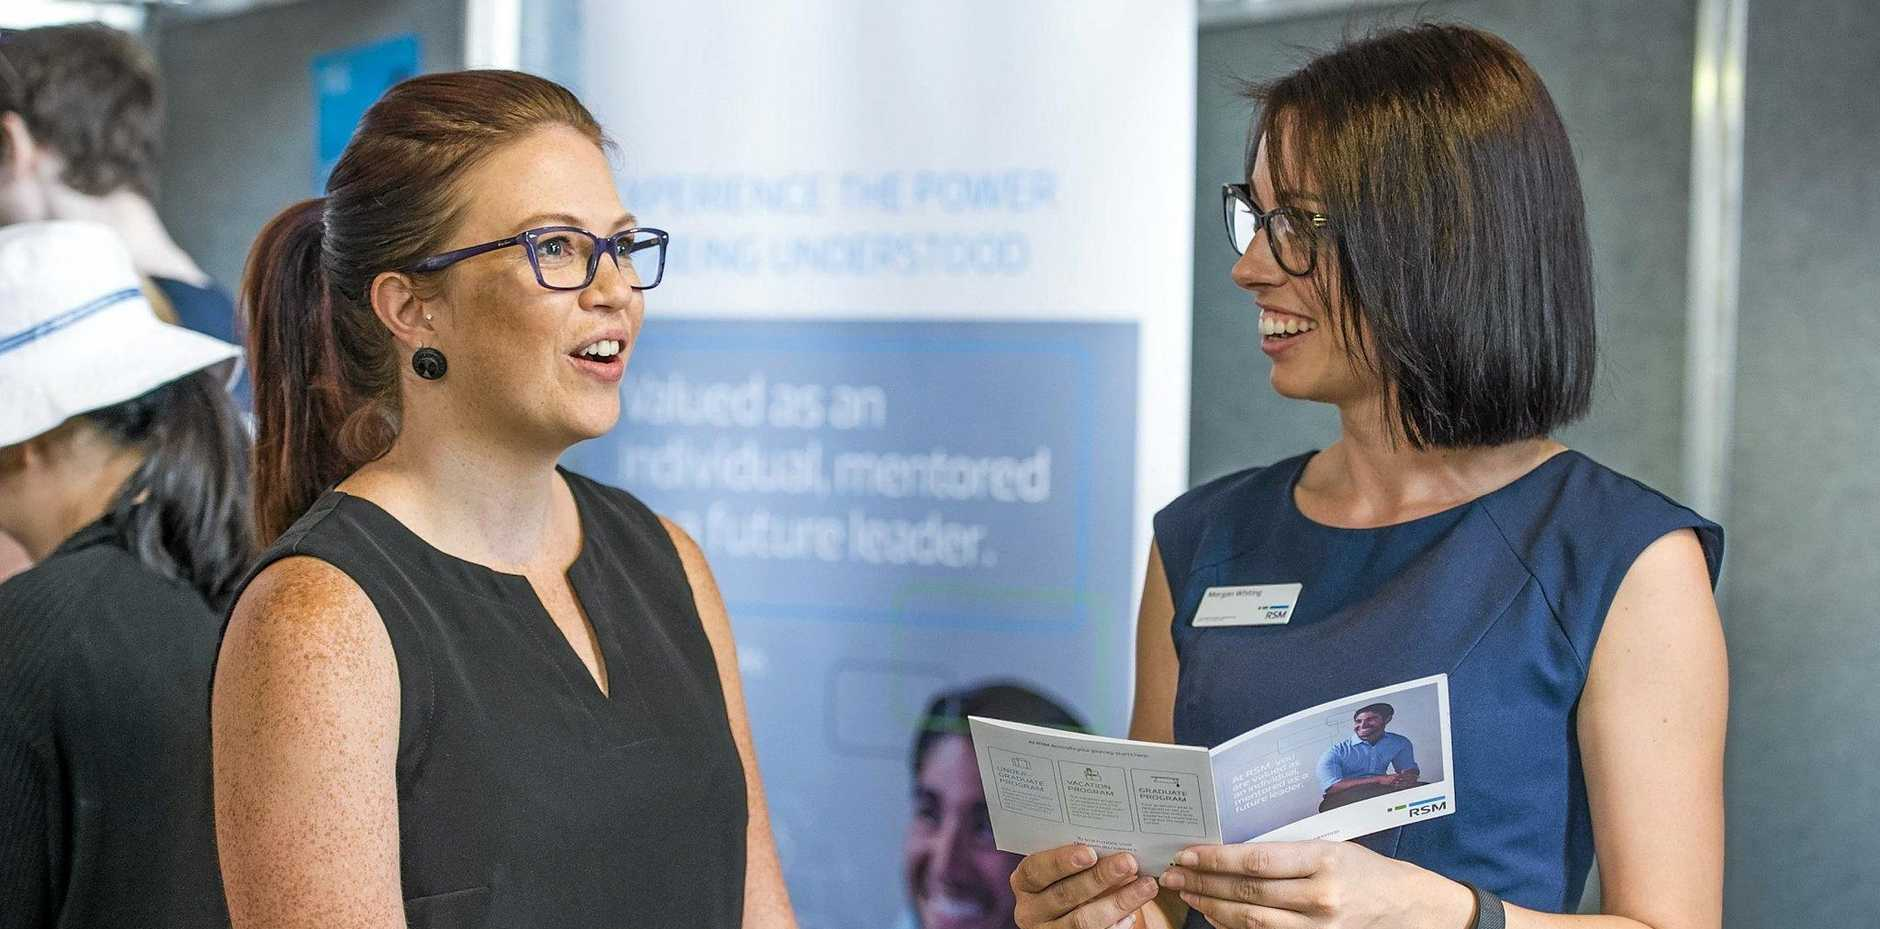 STUDY TIME: USQ postgraduate student Rachel Butler (Master of Business Administration) speaks to industry representative and USQ graduate Morgan Whiting (senior accountant at RSM Australia) at the USQ Career Fair.